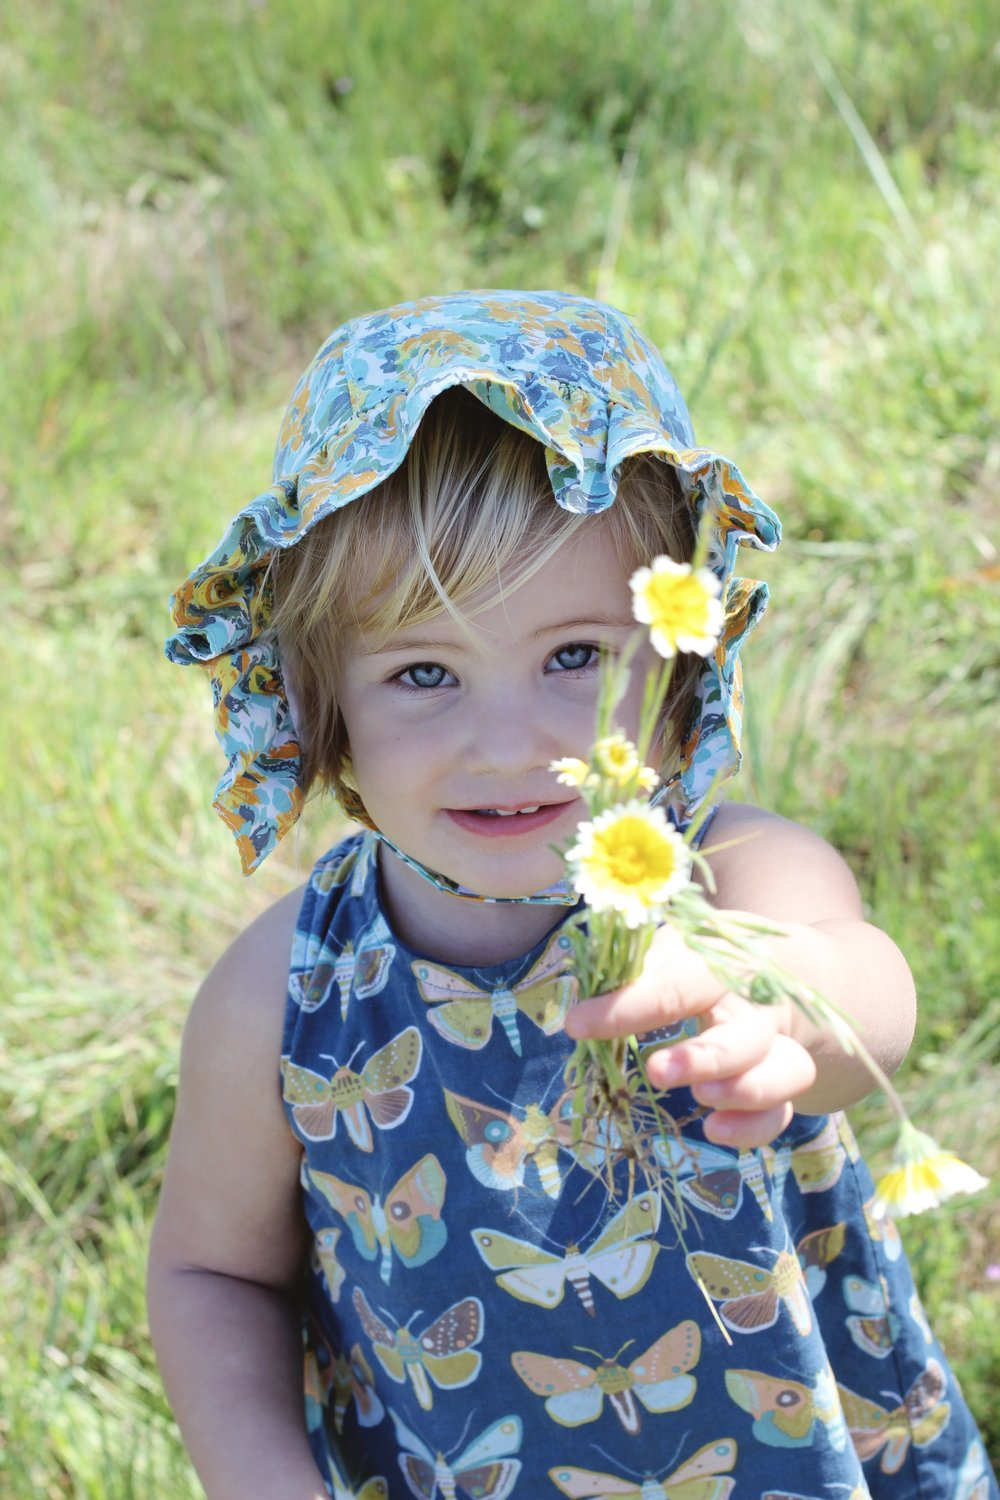 Ruffle Baby Sunbonnet by  Blue Corduroy .  photo by  Native Fern .